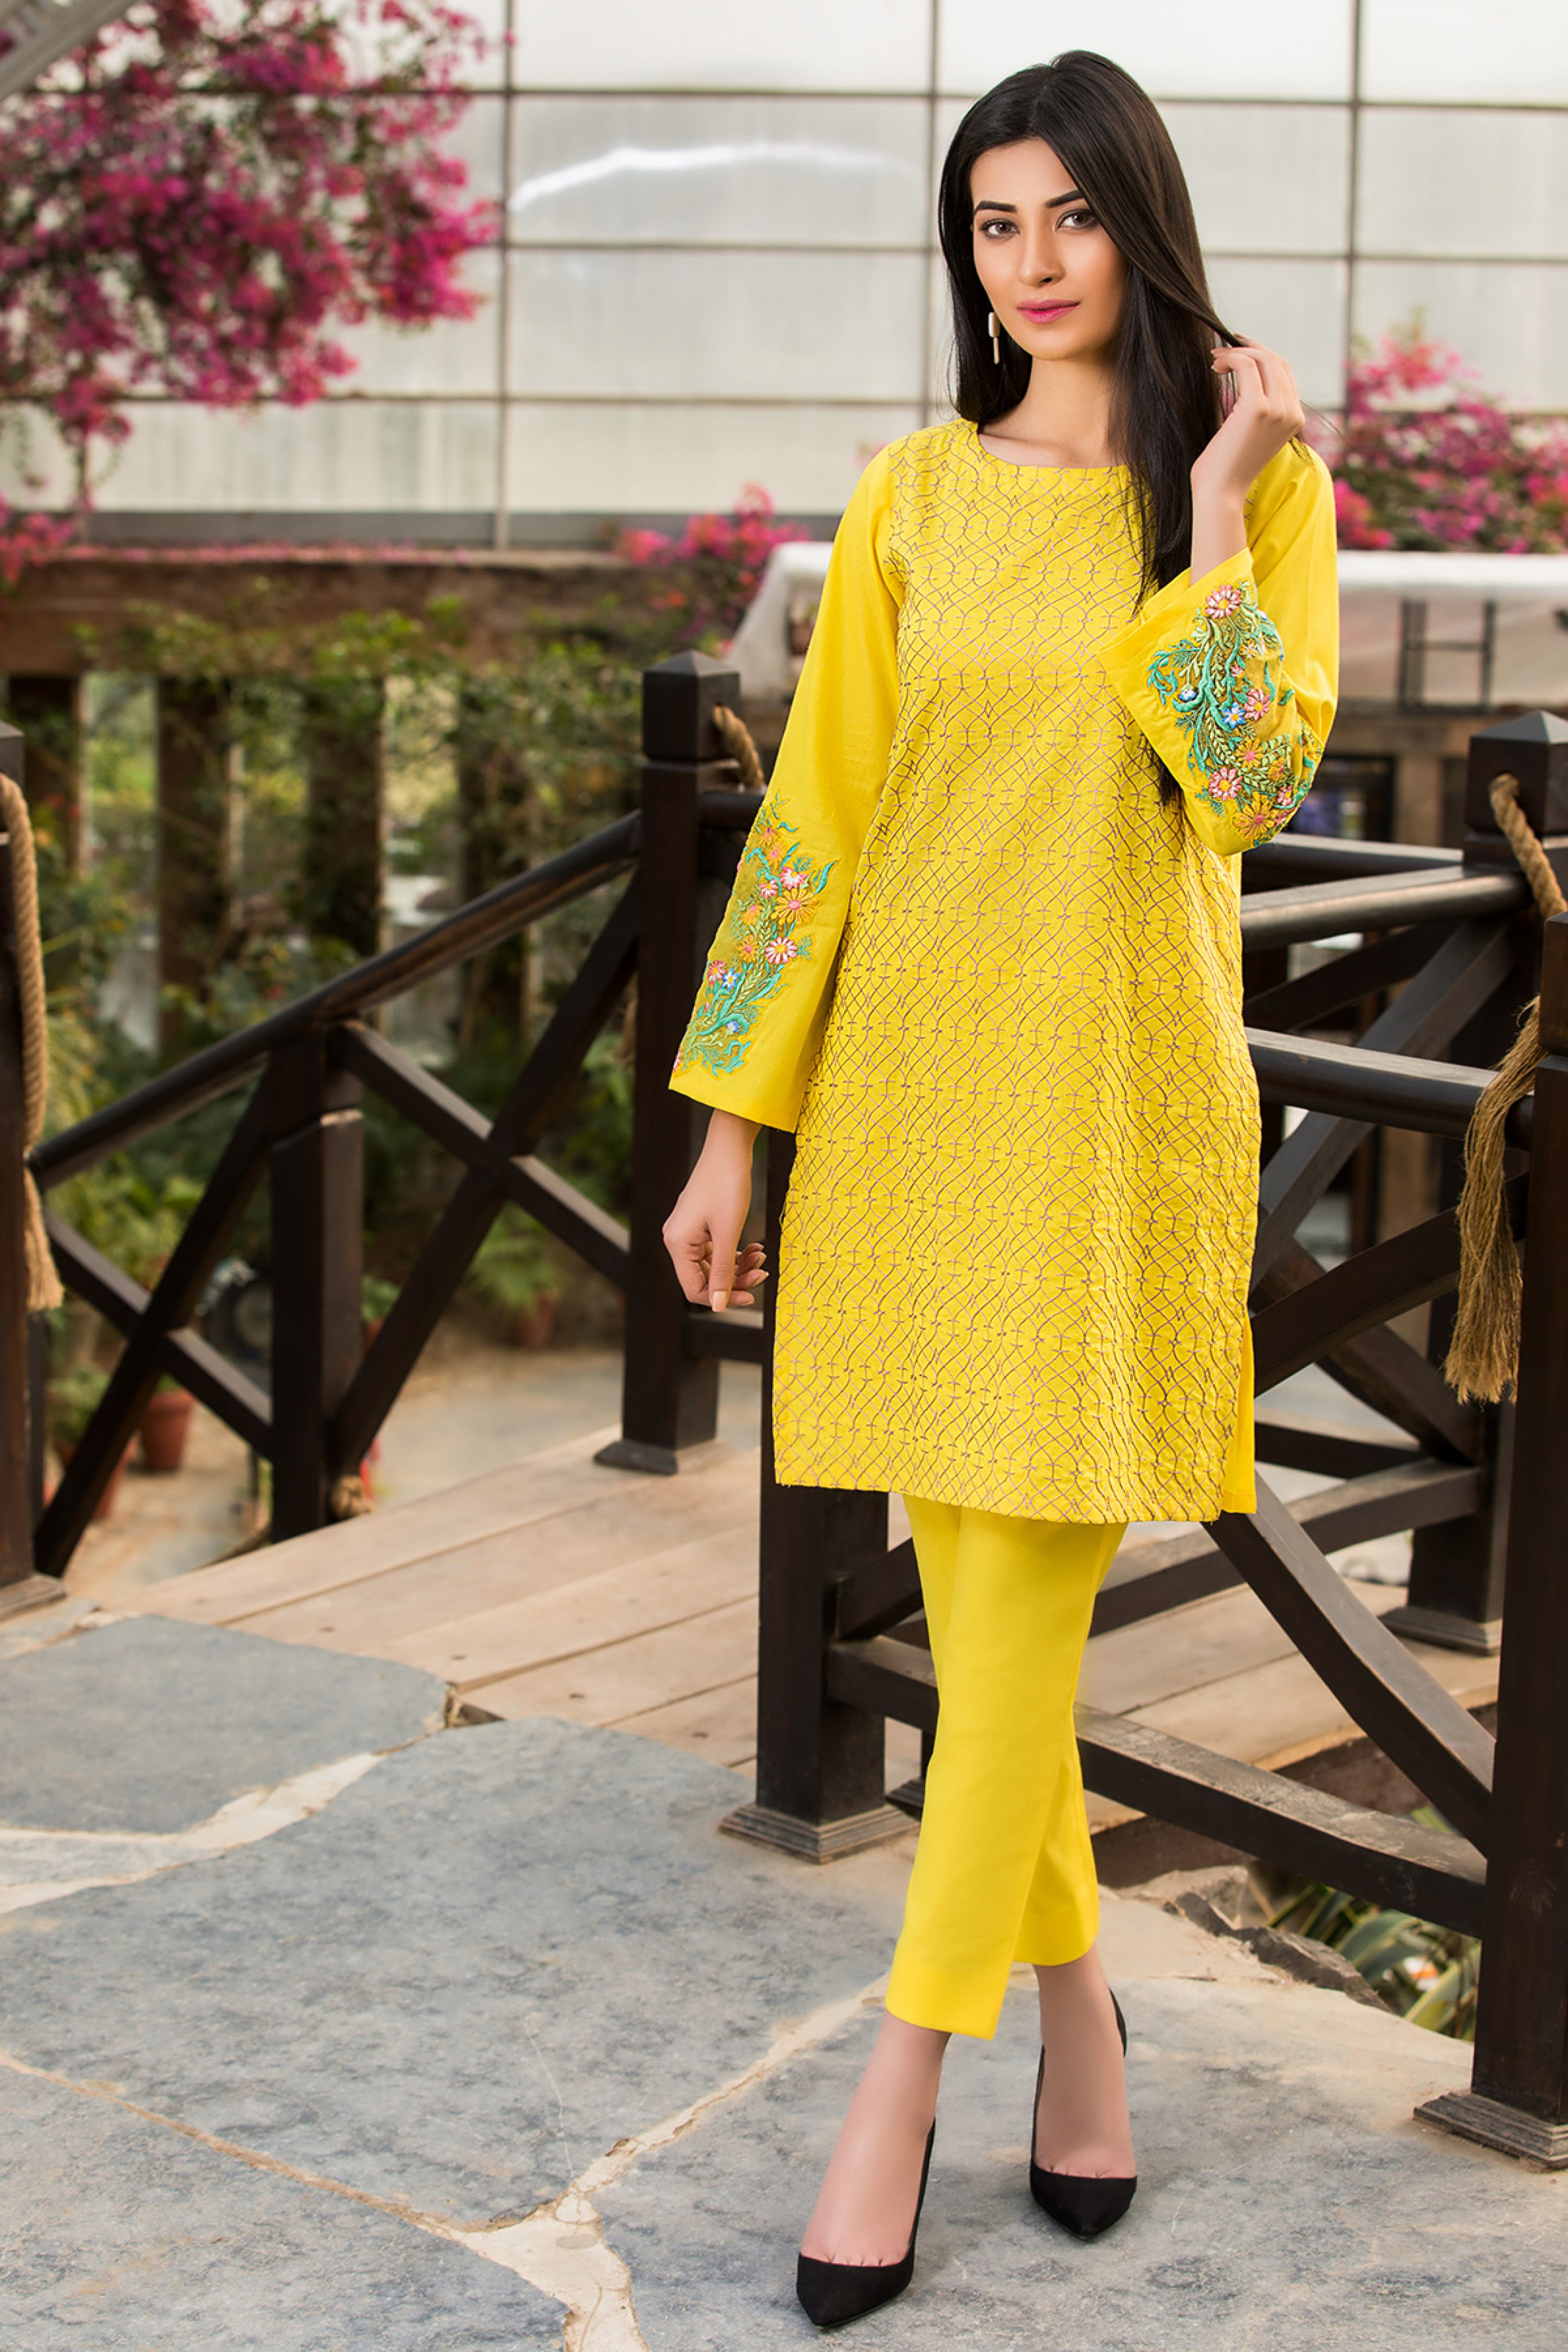 SUNSHINE ( EMBROIDERED SHIRT & TROUSER )